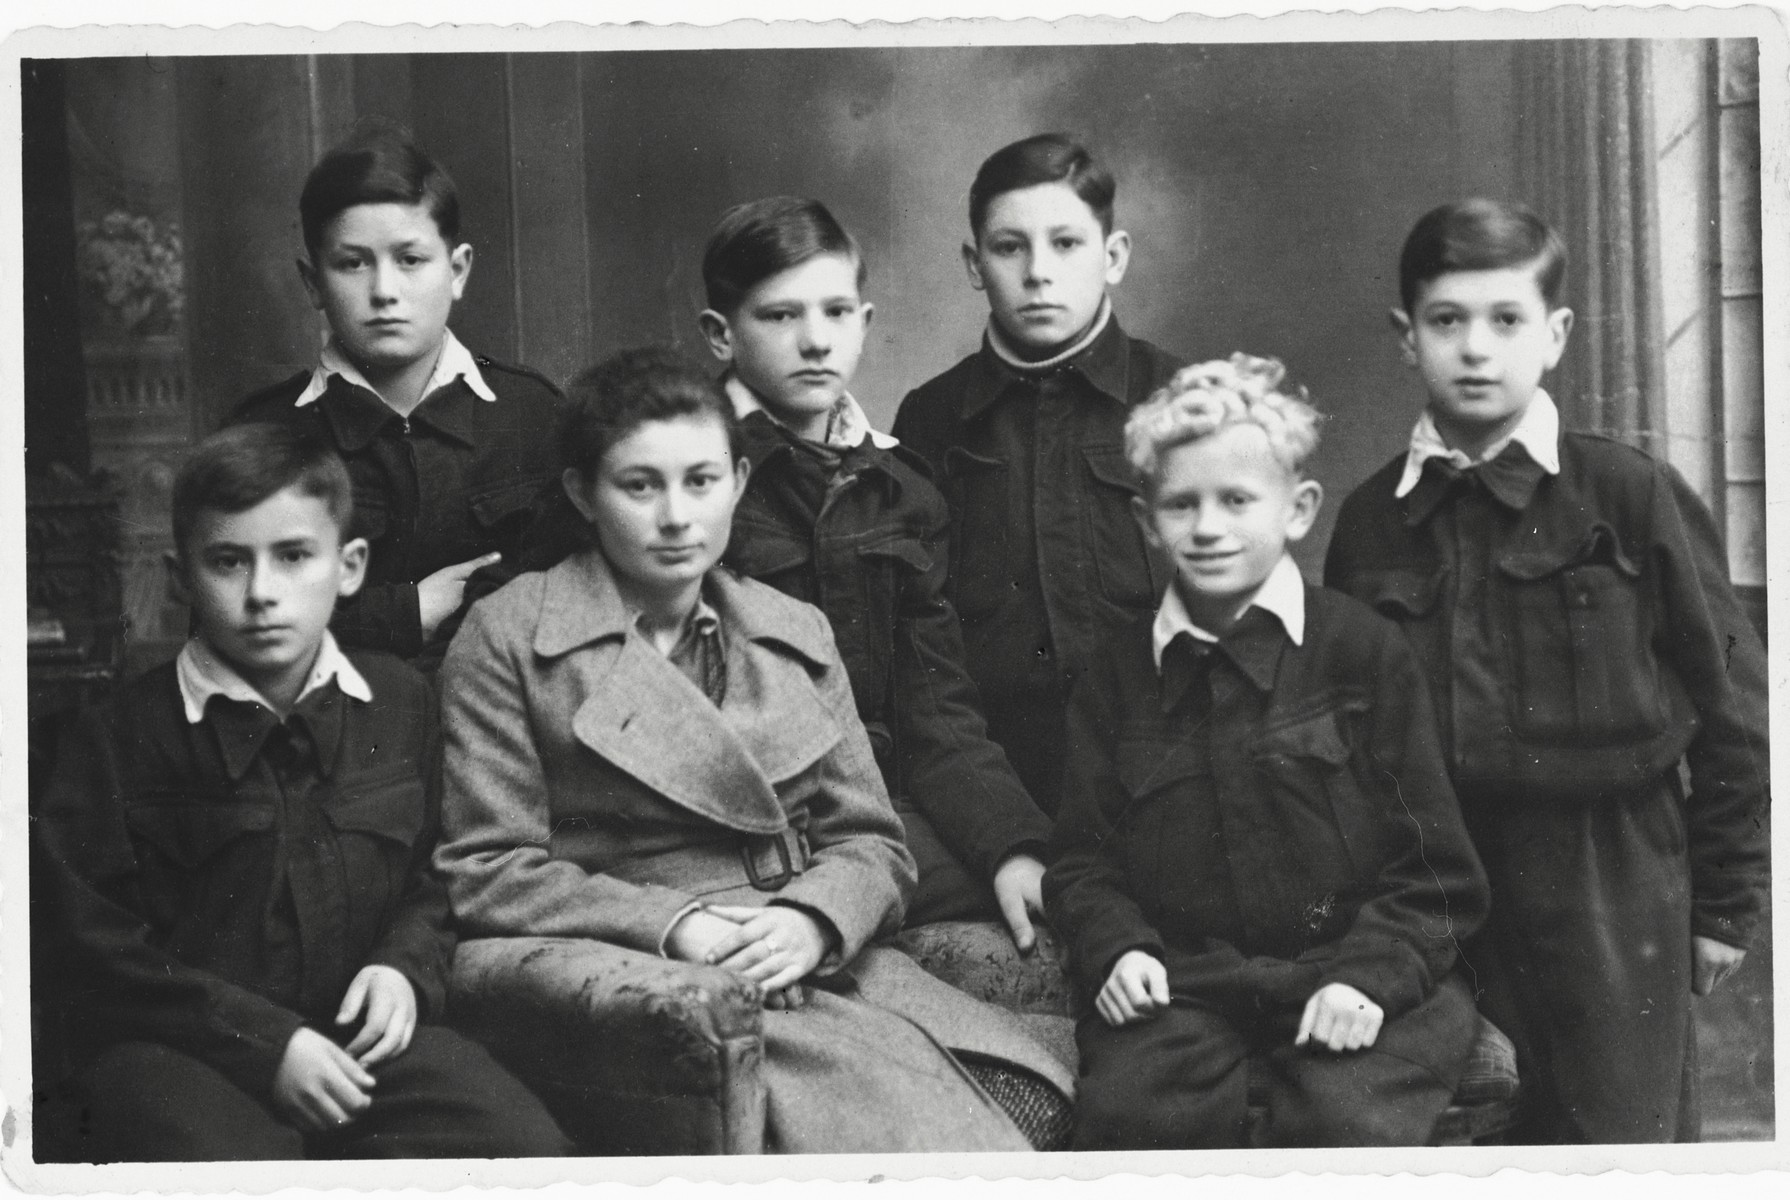 Children in a Jewish orphanage in Peterswaldau.  Szlomo Waks is seated in the front right.